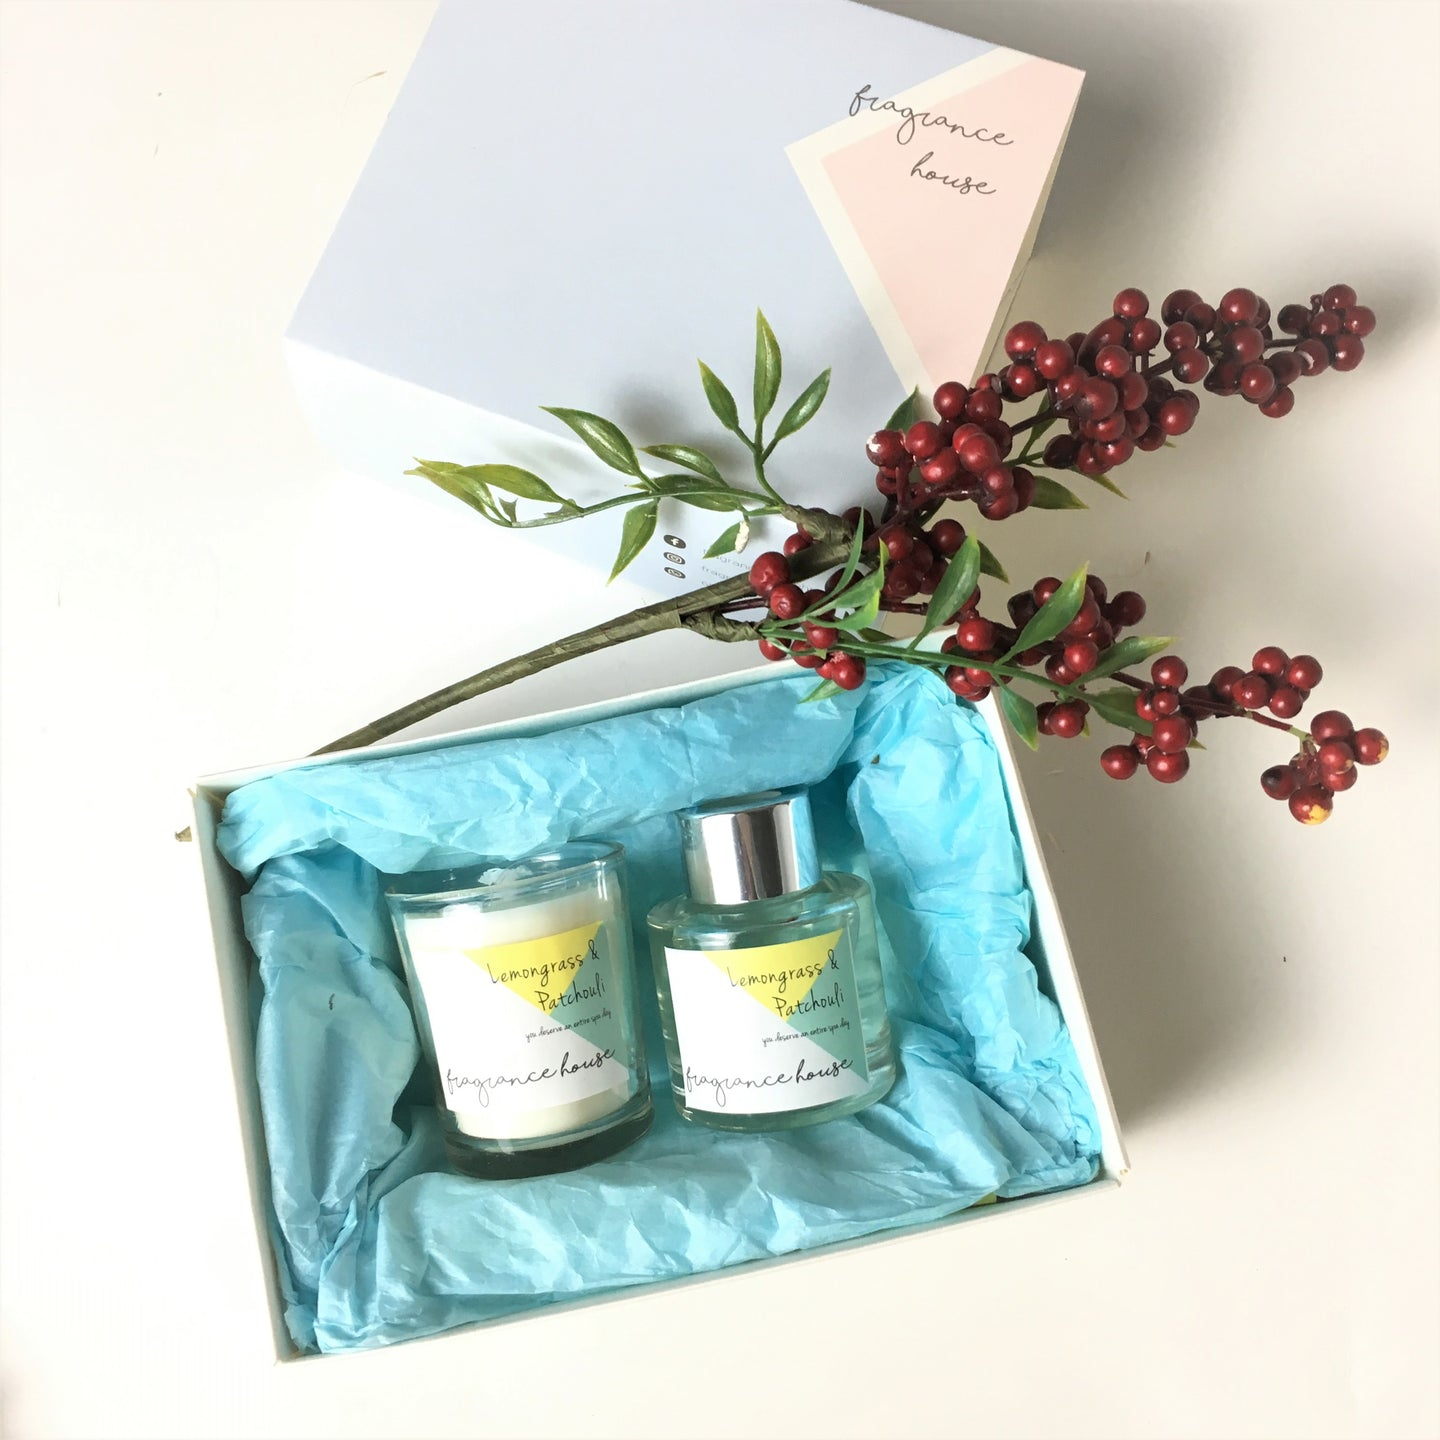 迷你香薰禮品套裝 Mini Fragrance Gift Set • 50ml Diffuser + 68g Candle • 檸檬草與廣藿香 | Lemongrass & Patchouli